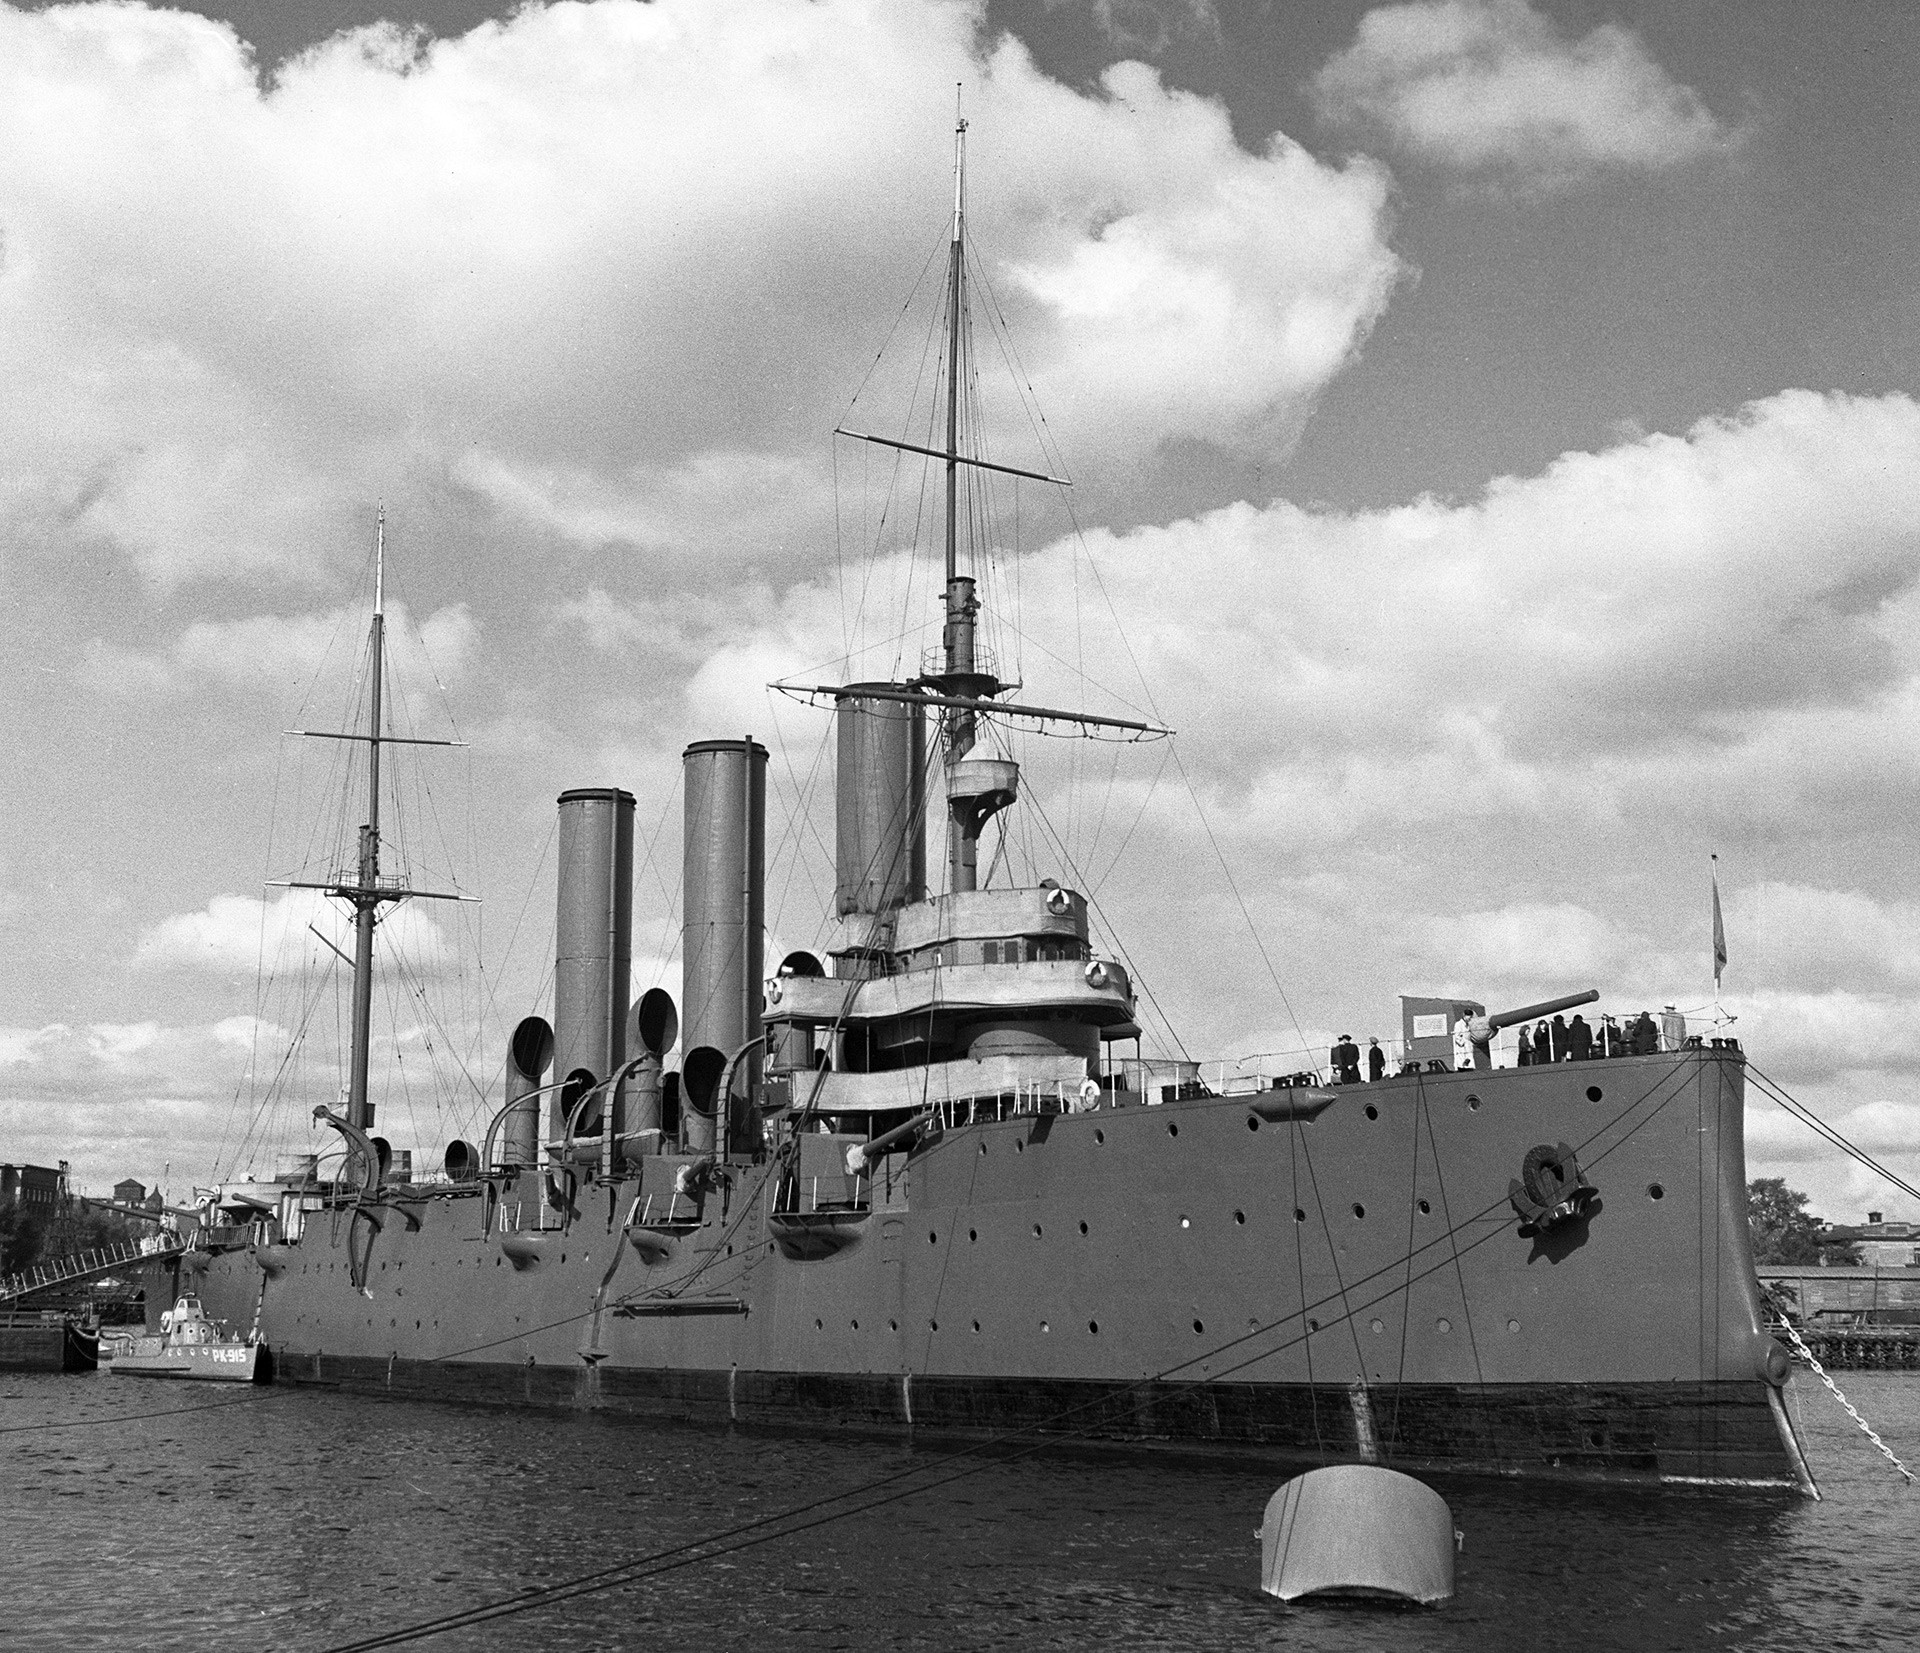 The cruiser Aurora at Petrogradskaya Embankment in St. Petersburg.